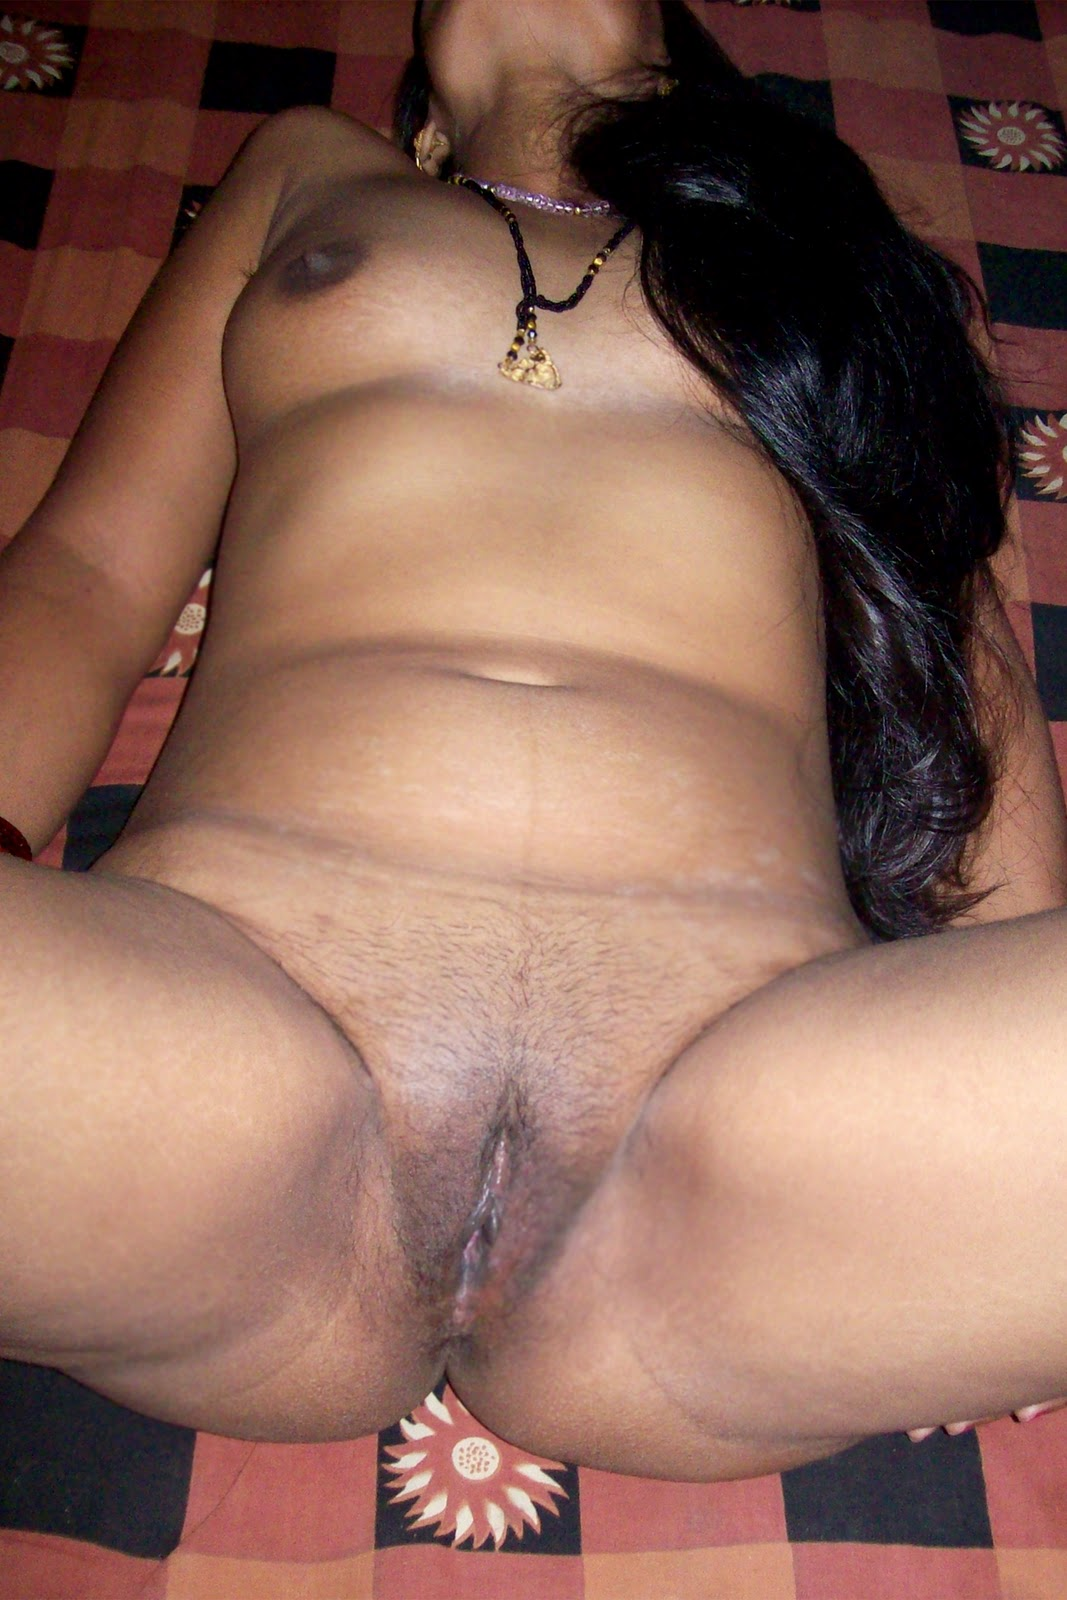 Sri lankan sex and nude modler, amiture post nude